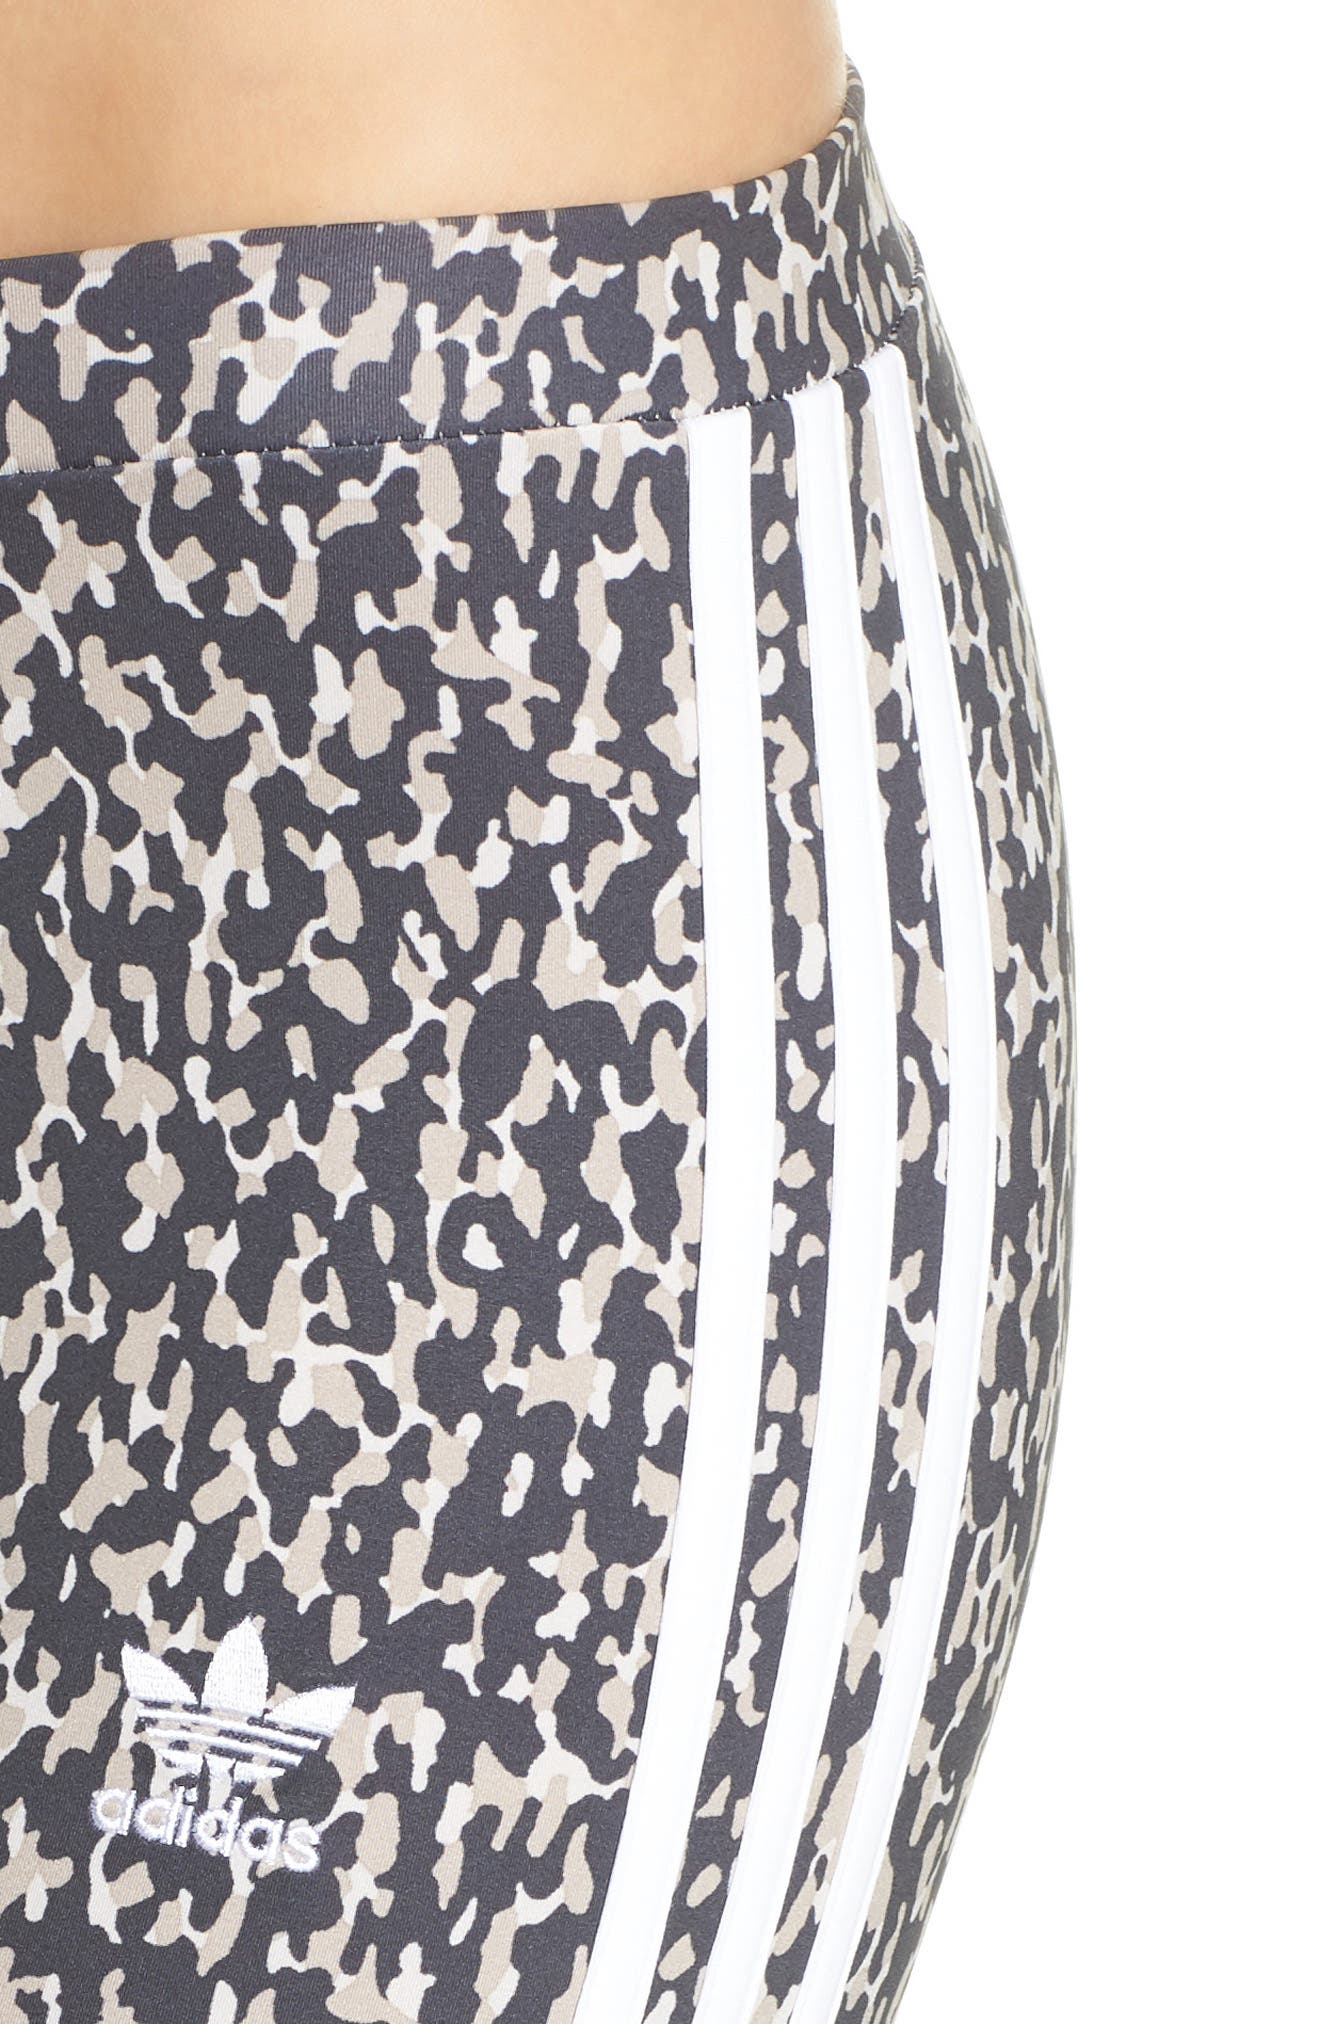 Leopard Camo Leggings,                             Alternate thumbnail 4, color,                             Leoflage Aop